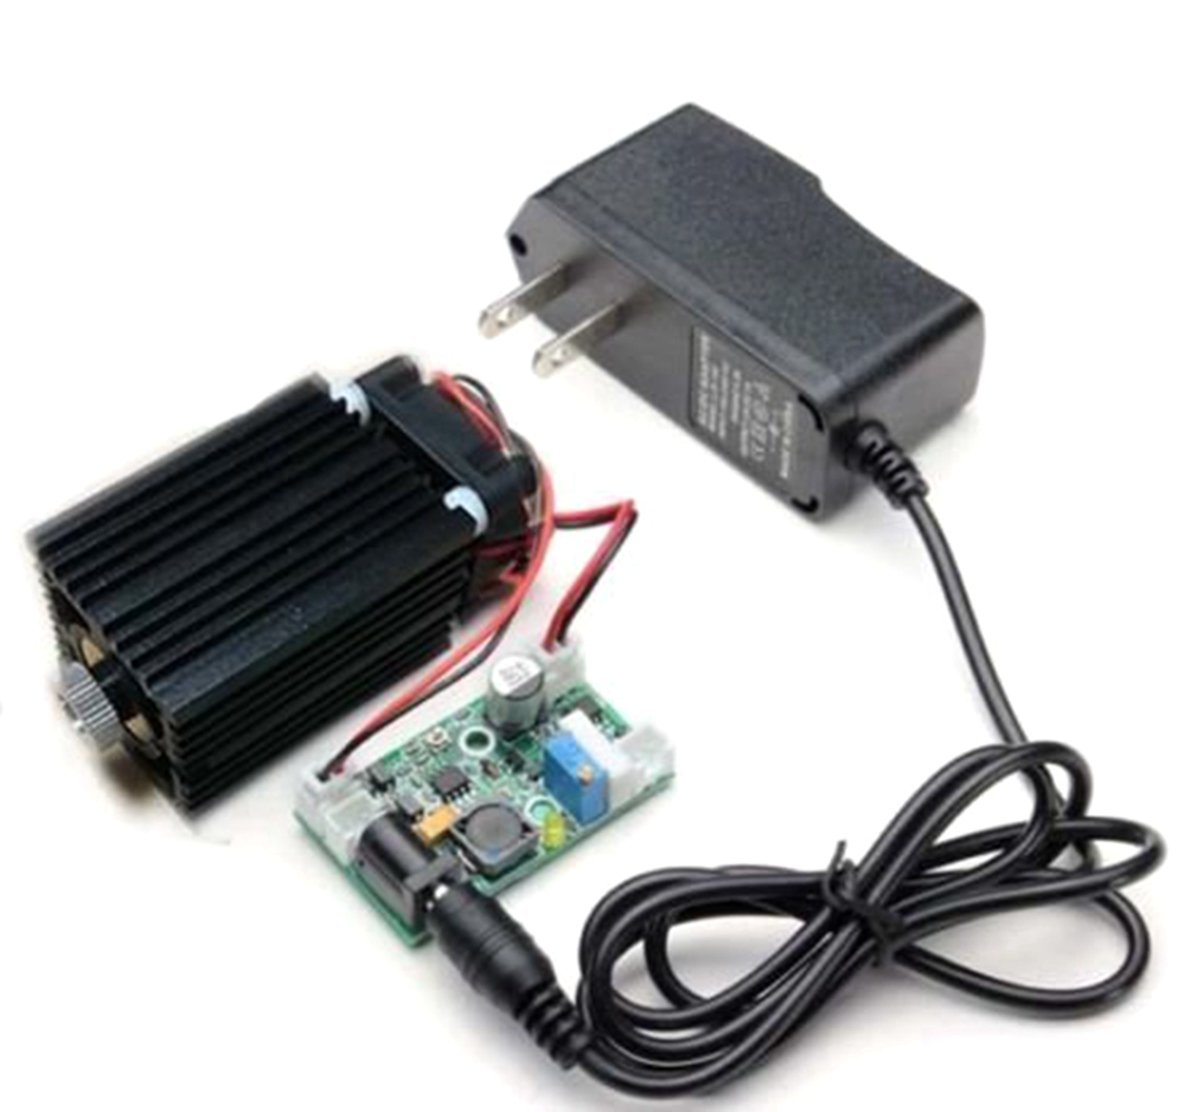 Focusable 450nm 2W 2000mw NDB7875 Diode Blue Laser Dot Module W/Driver out+TTL 12V Wood Cutting/Engraving + Adapter